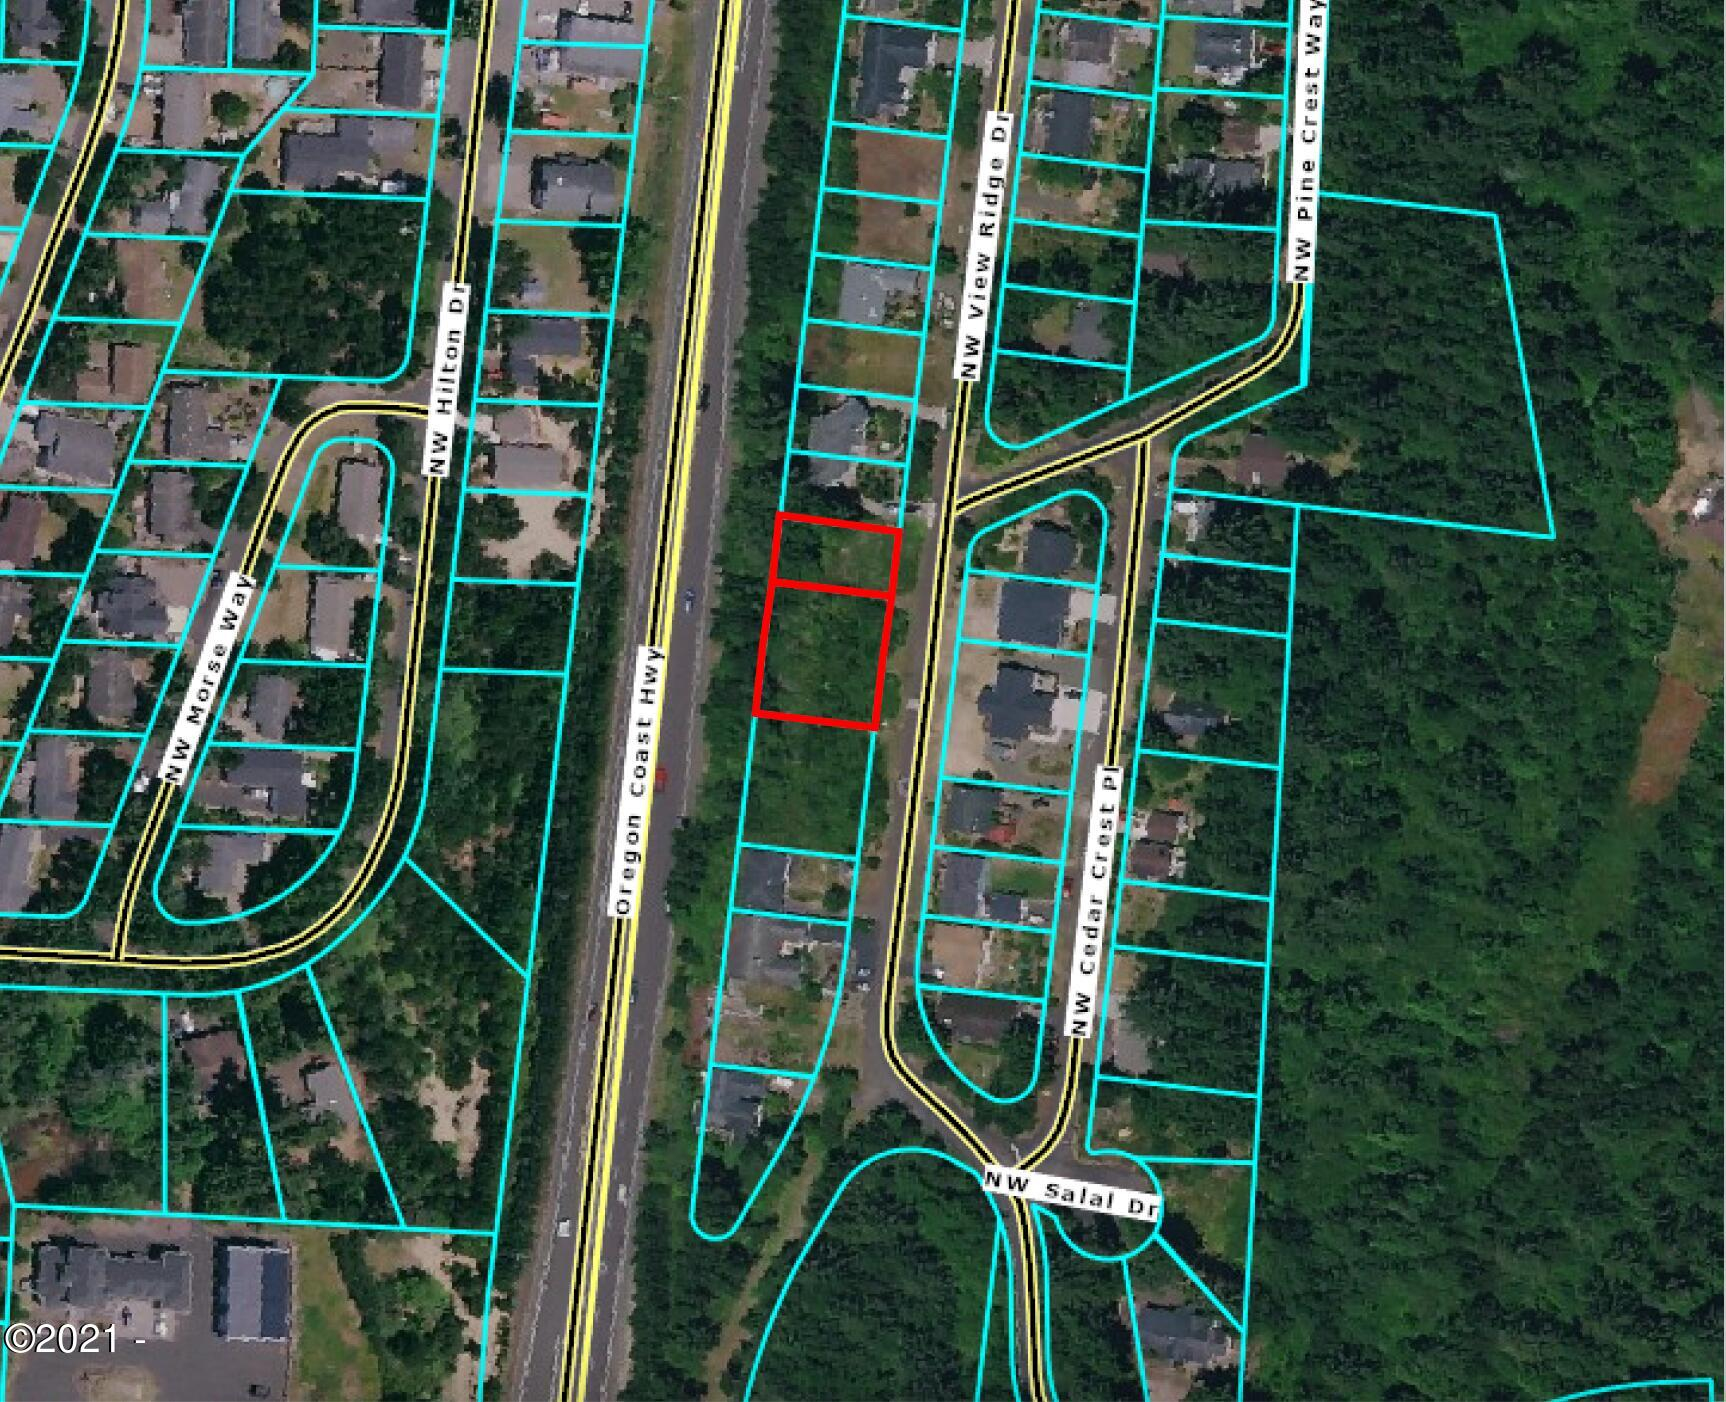 1902/1822 NW View Ridge Drive, Waldport, OR 97394 - Plat Map